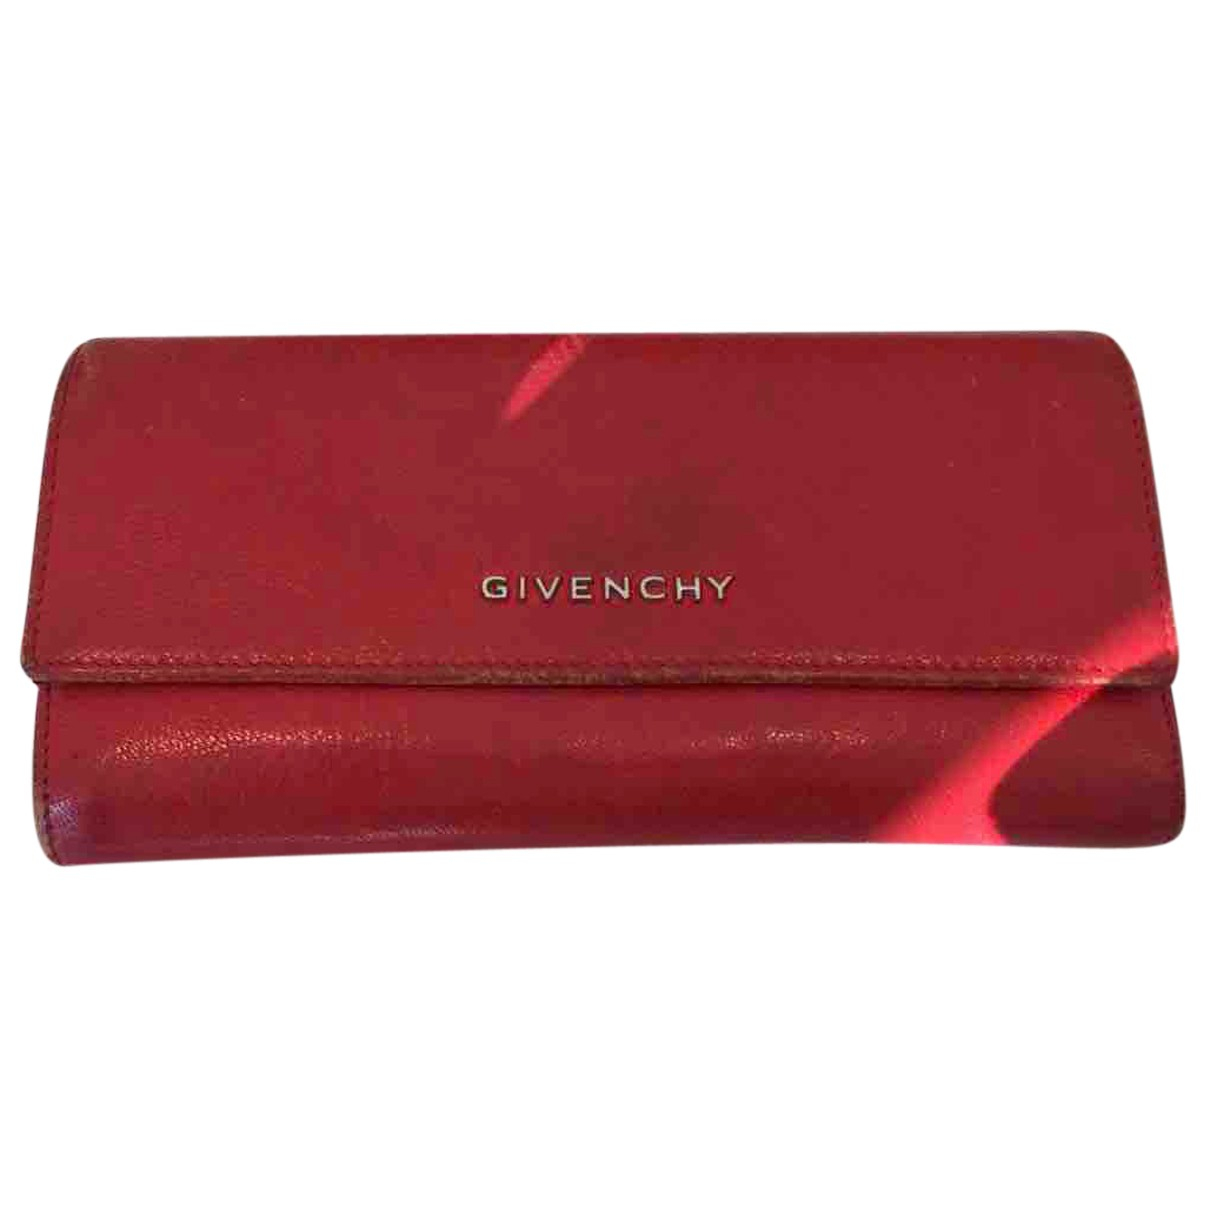 Givenchy N Red Leather Purses, wallet & cases for Women N